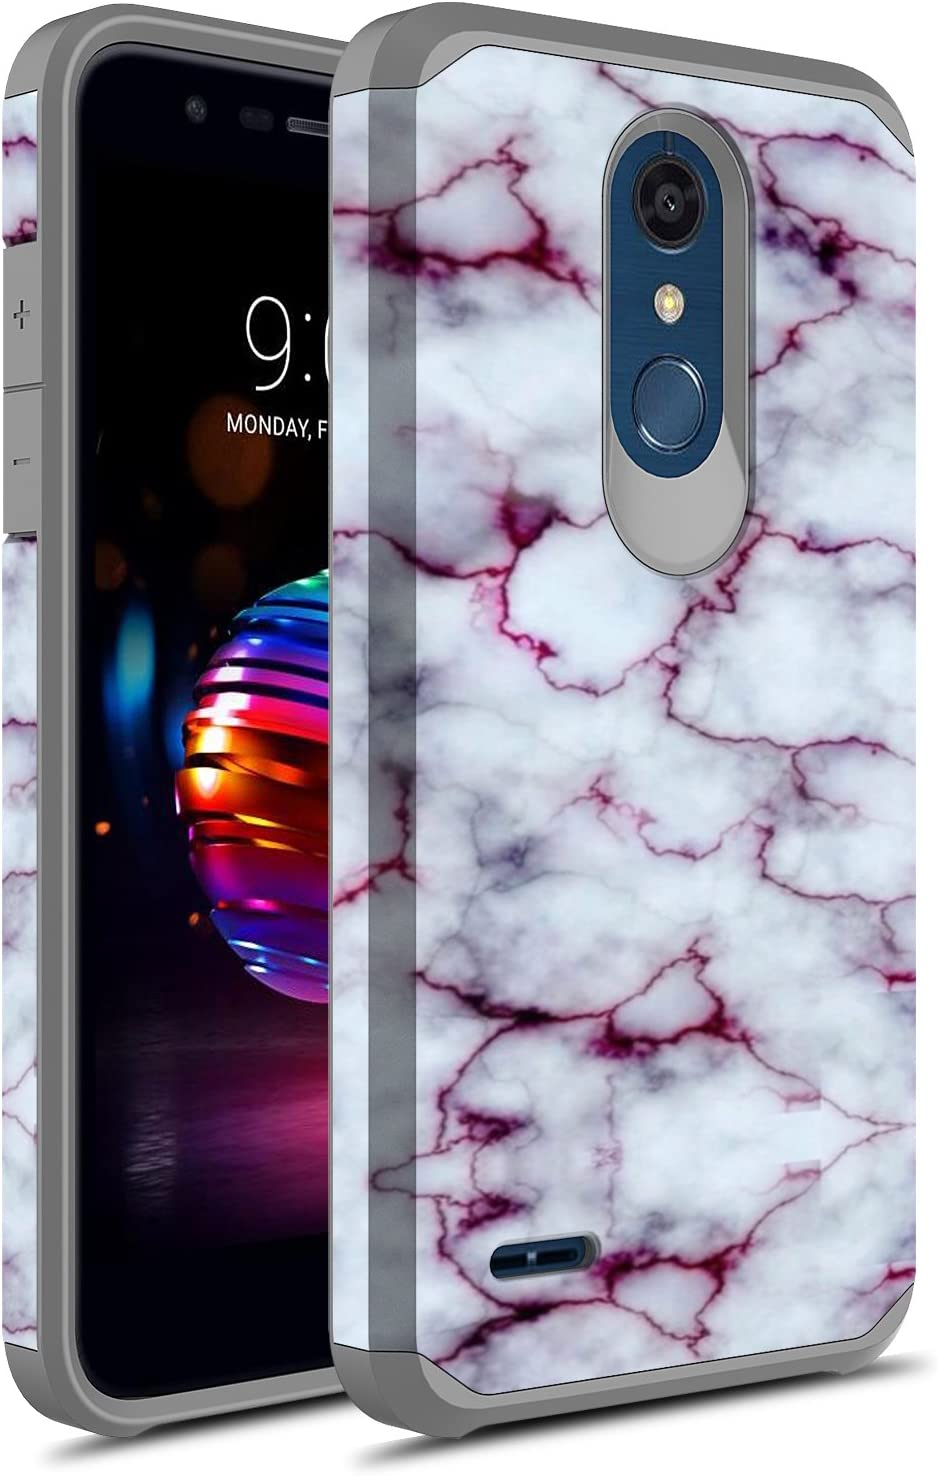 LG K30 Case, LG Premier Pro LTE Case, LG Harmony 2 Case, LG Phoenix Plus Case, Rosebono Slim Hybrid Dual Layer Shockproof Graphic Cover Armor Case for LG K10 2018 (Purple Marble)